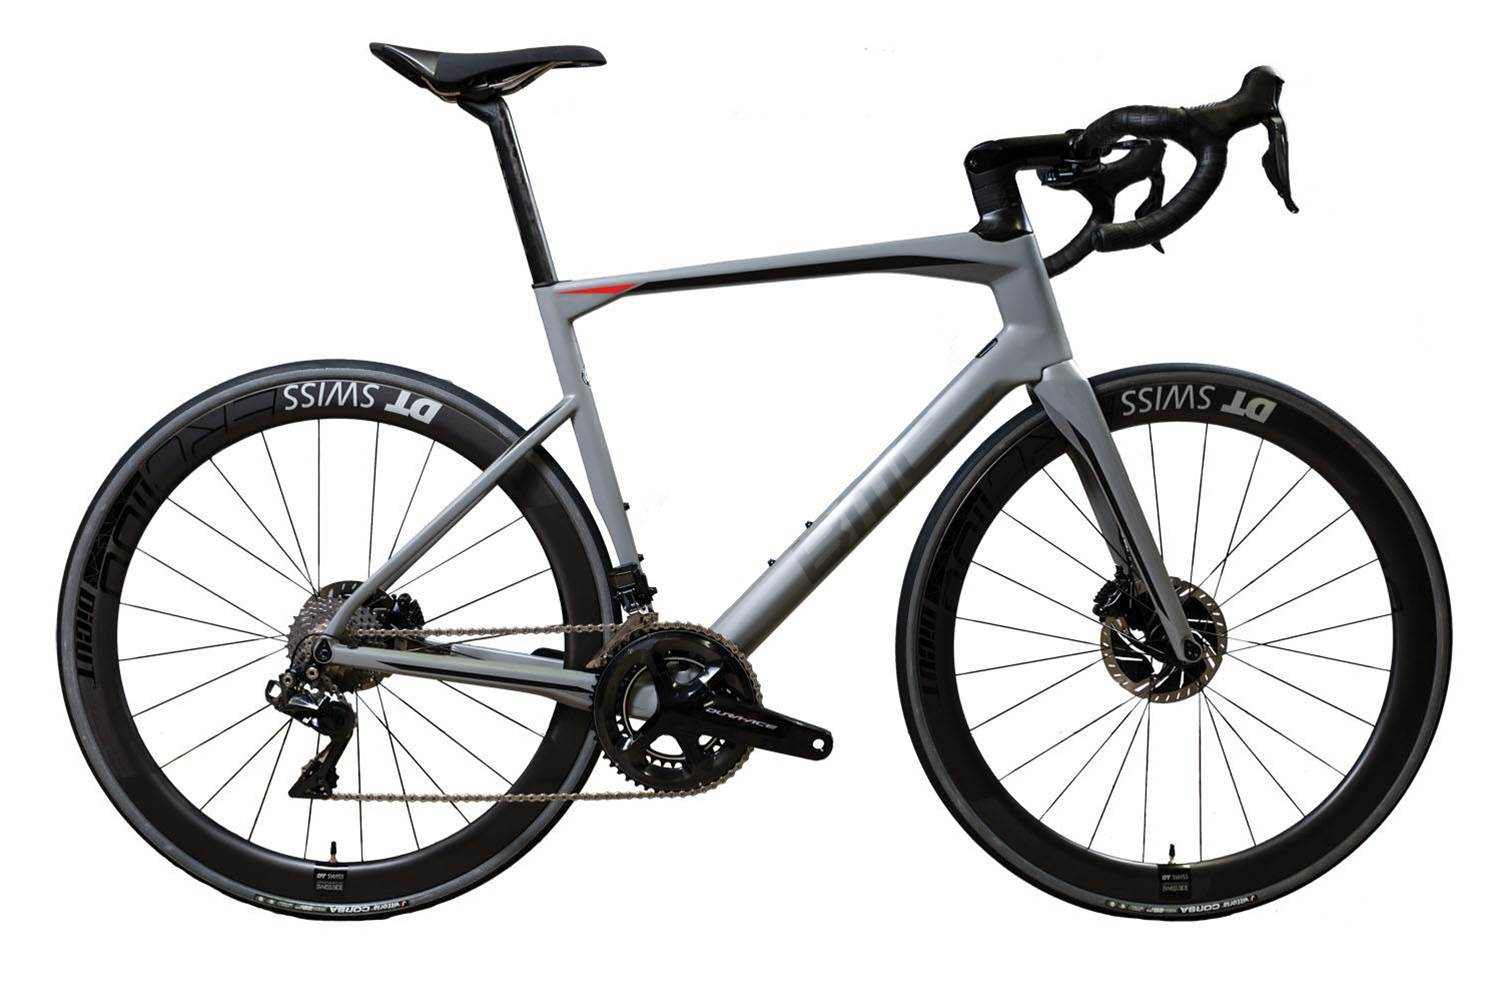 BUYER'S GUIDE: Fast non-racing bikes